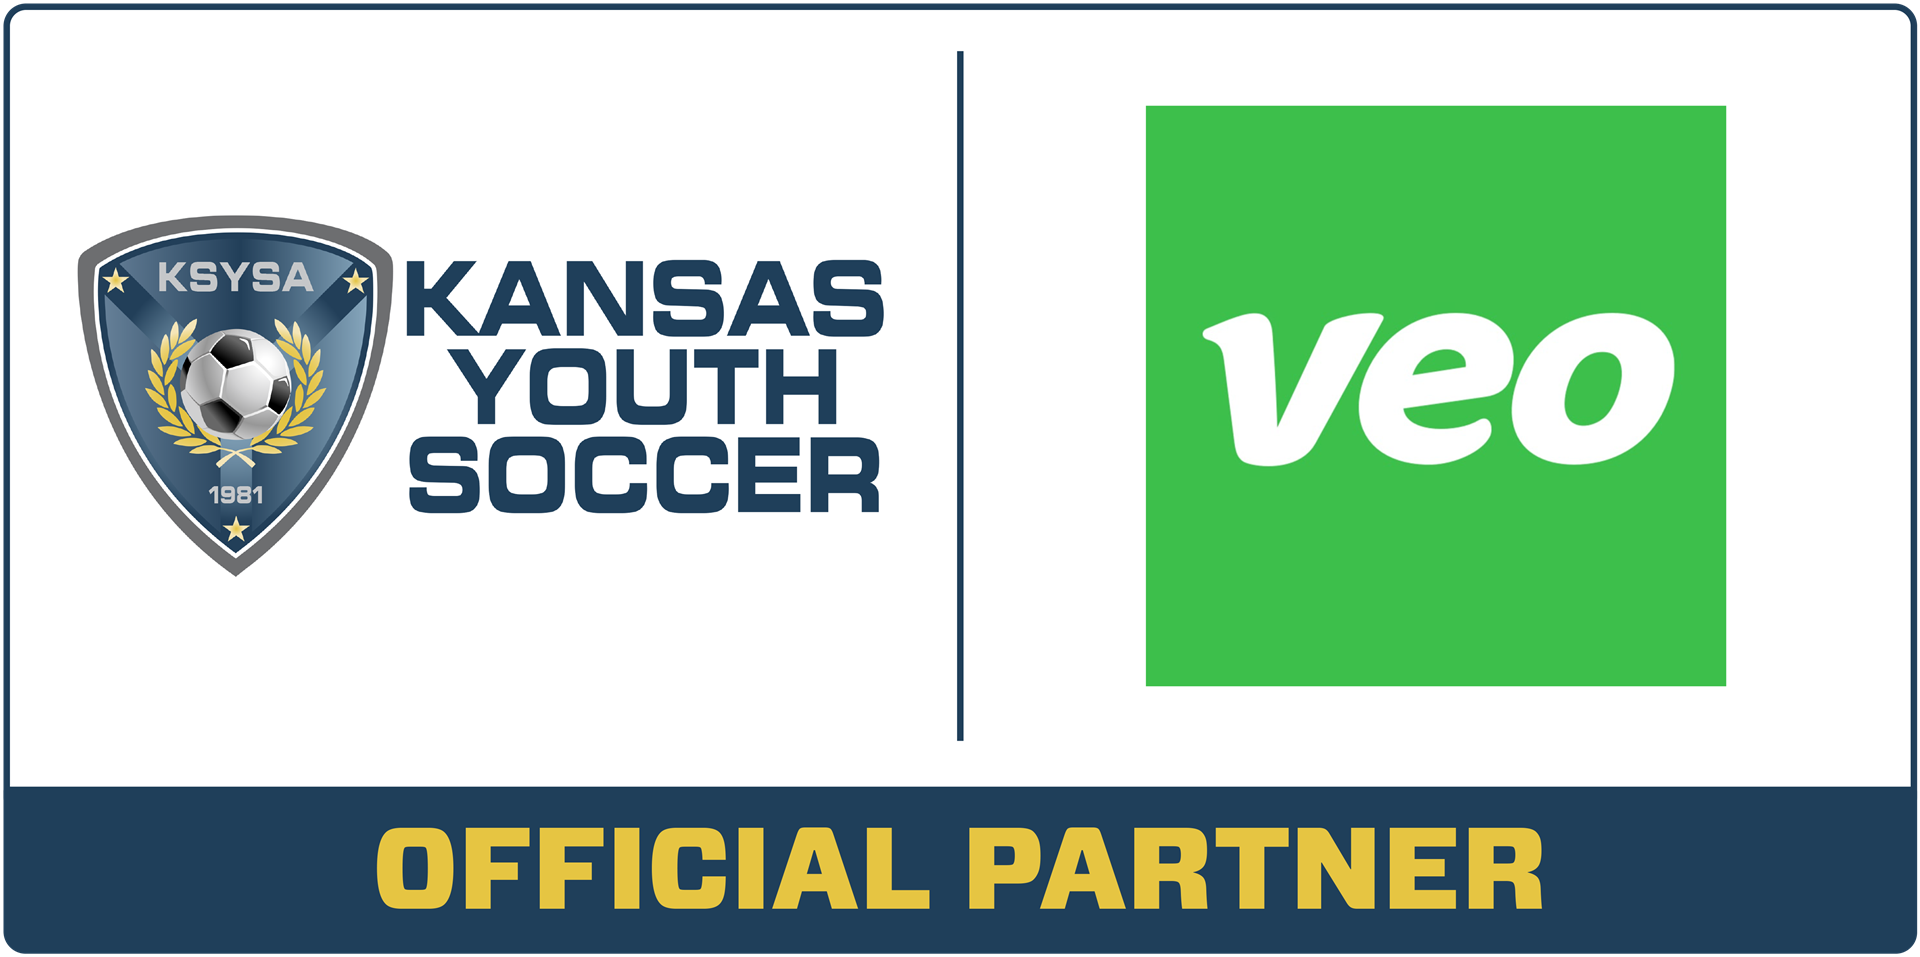 KS_Youth_Soccer_VEO_Official_Partner_Lockup_PNG